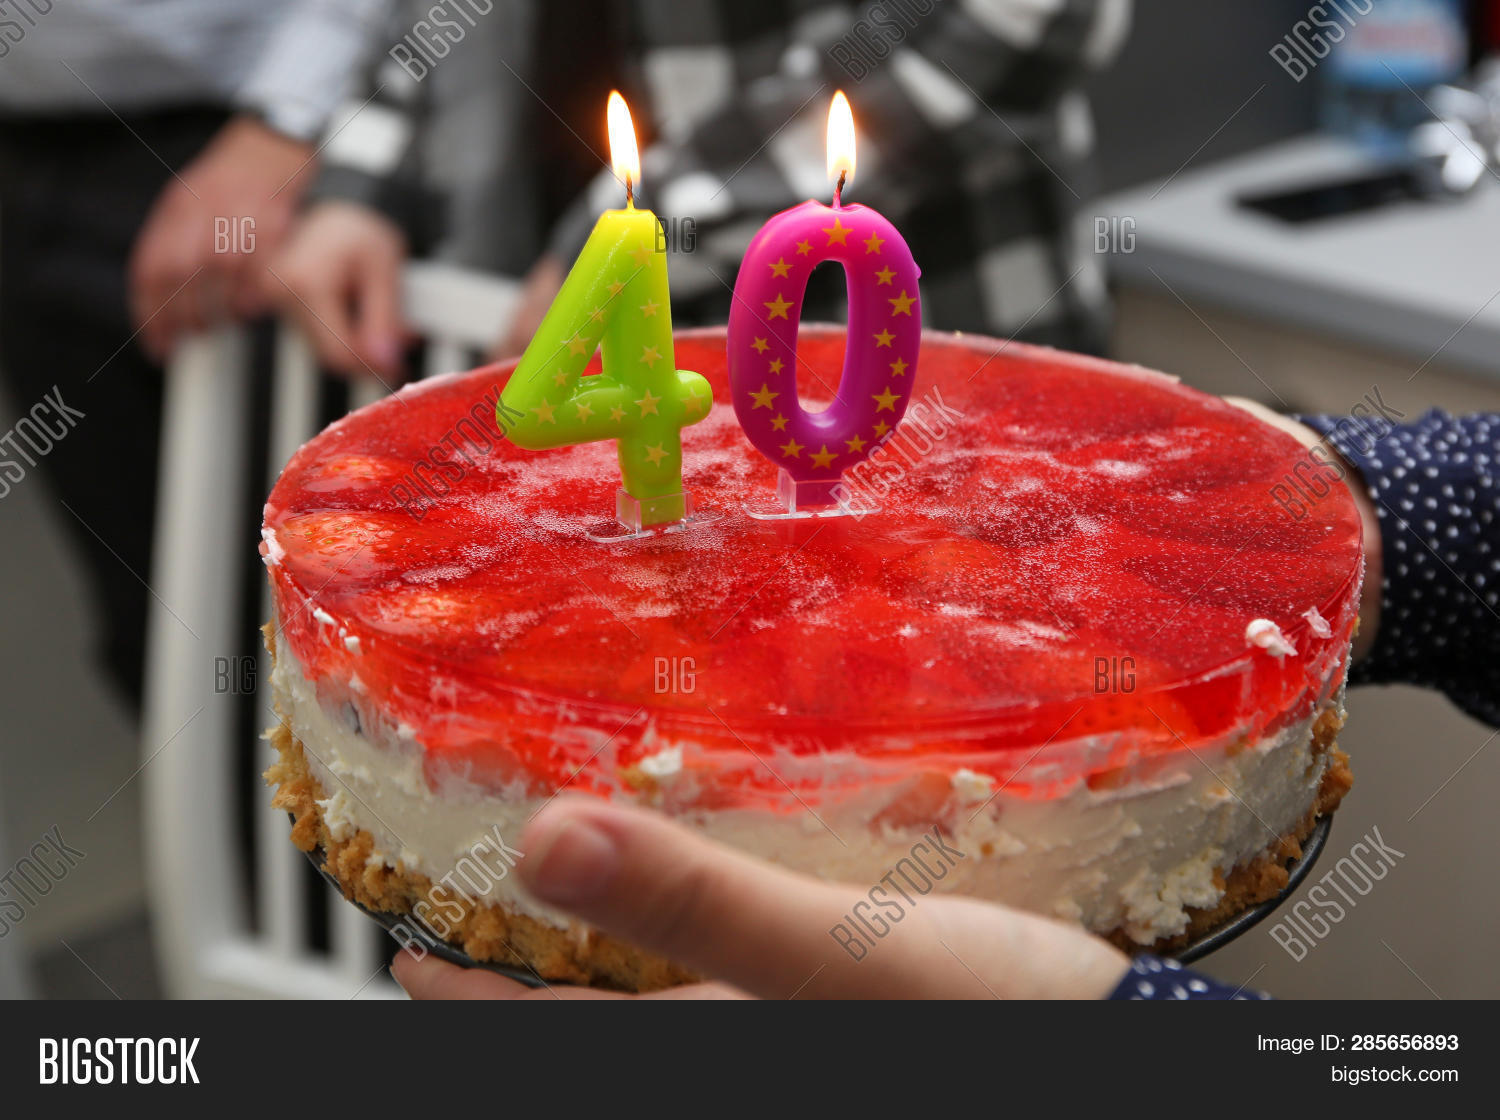 Awesome Birthday Cake Candles Image Photo Free Trial Bigstock Personalised Birthday Cards Veneteletsinfo